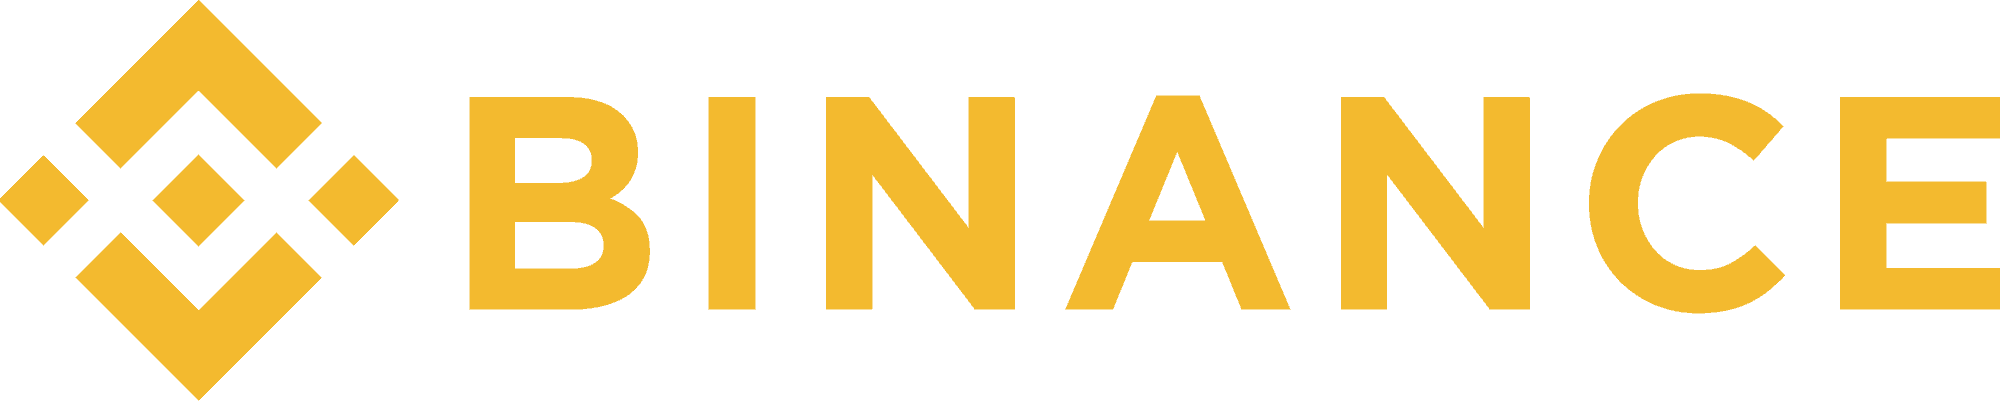 Binance-logo 3